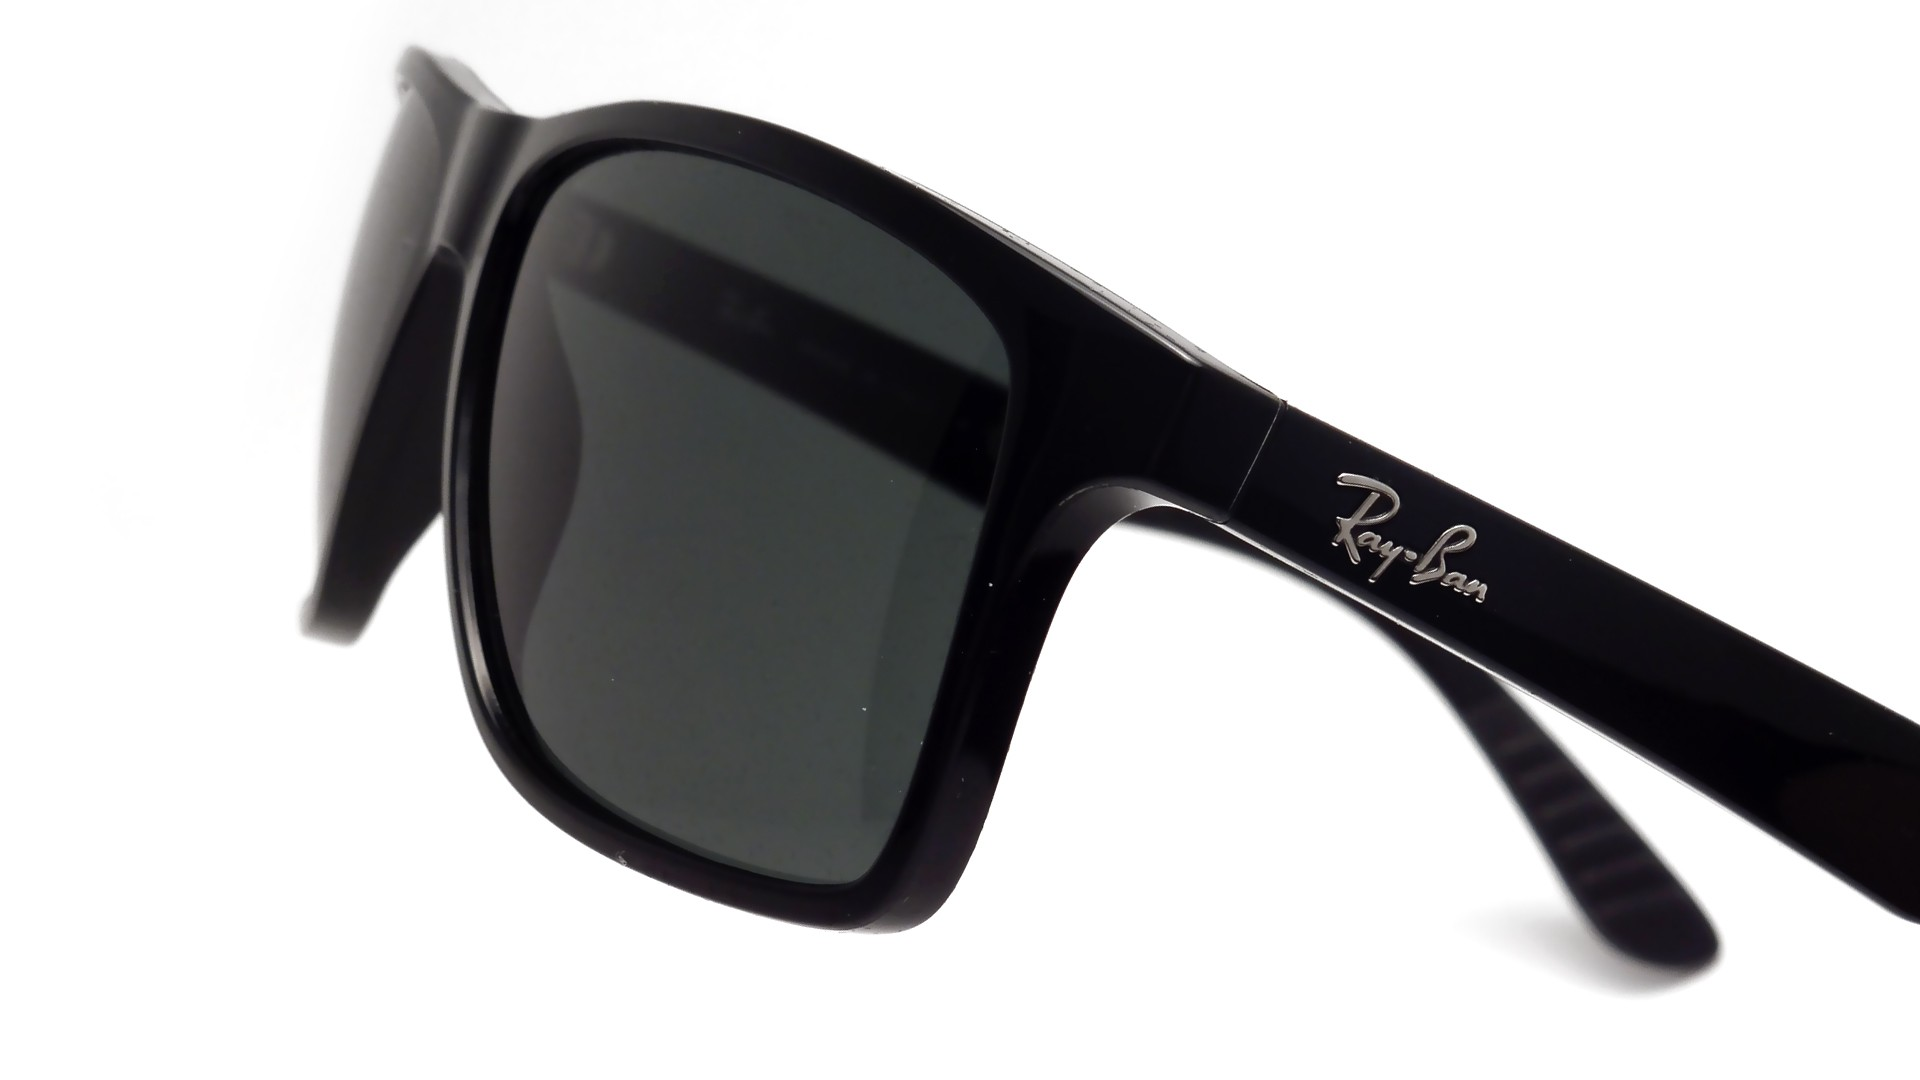 2a0c9c5daf ... aliexpress ray ban active lifestyle black rb4234 601 71 58 16  visiofactory d0efd 7ed3b